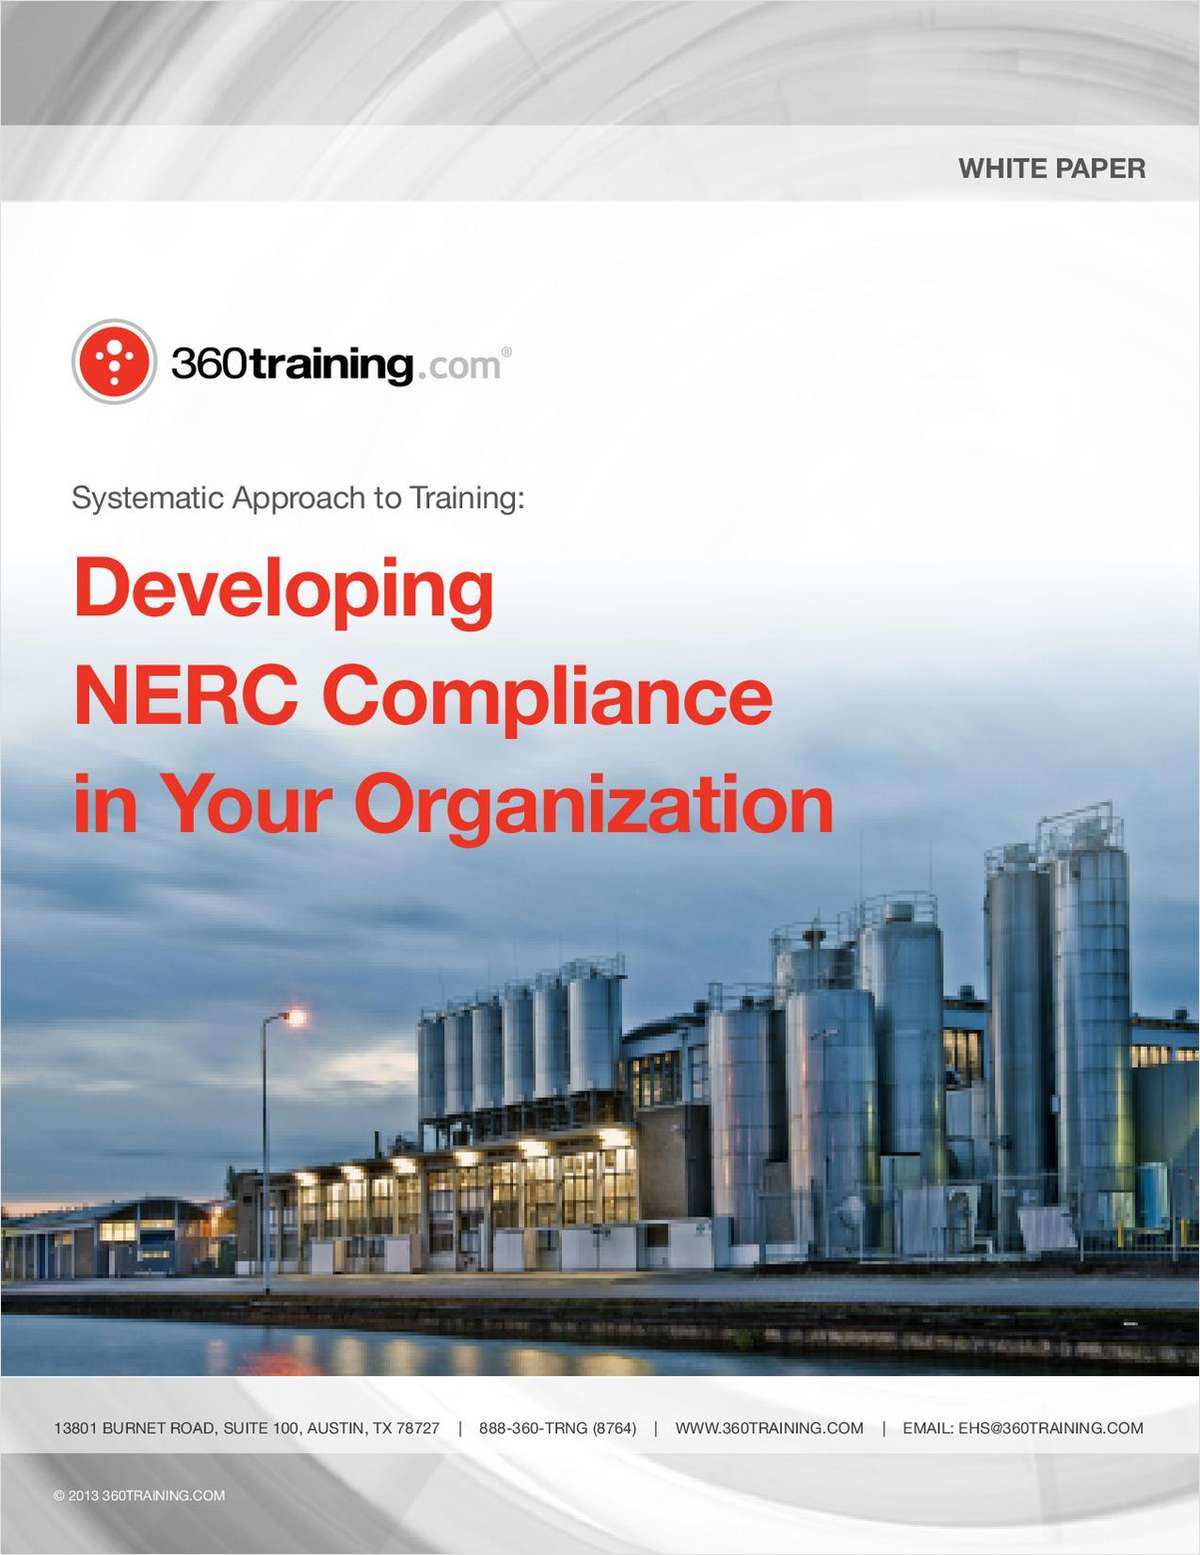 Systematic Approach to Training: Developing NERC Compliance in Your Organization